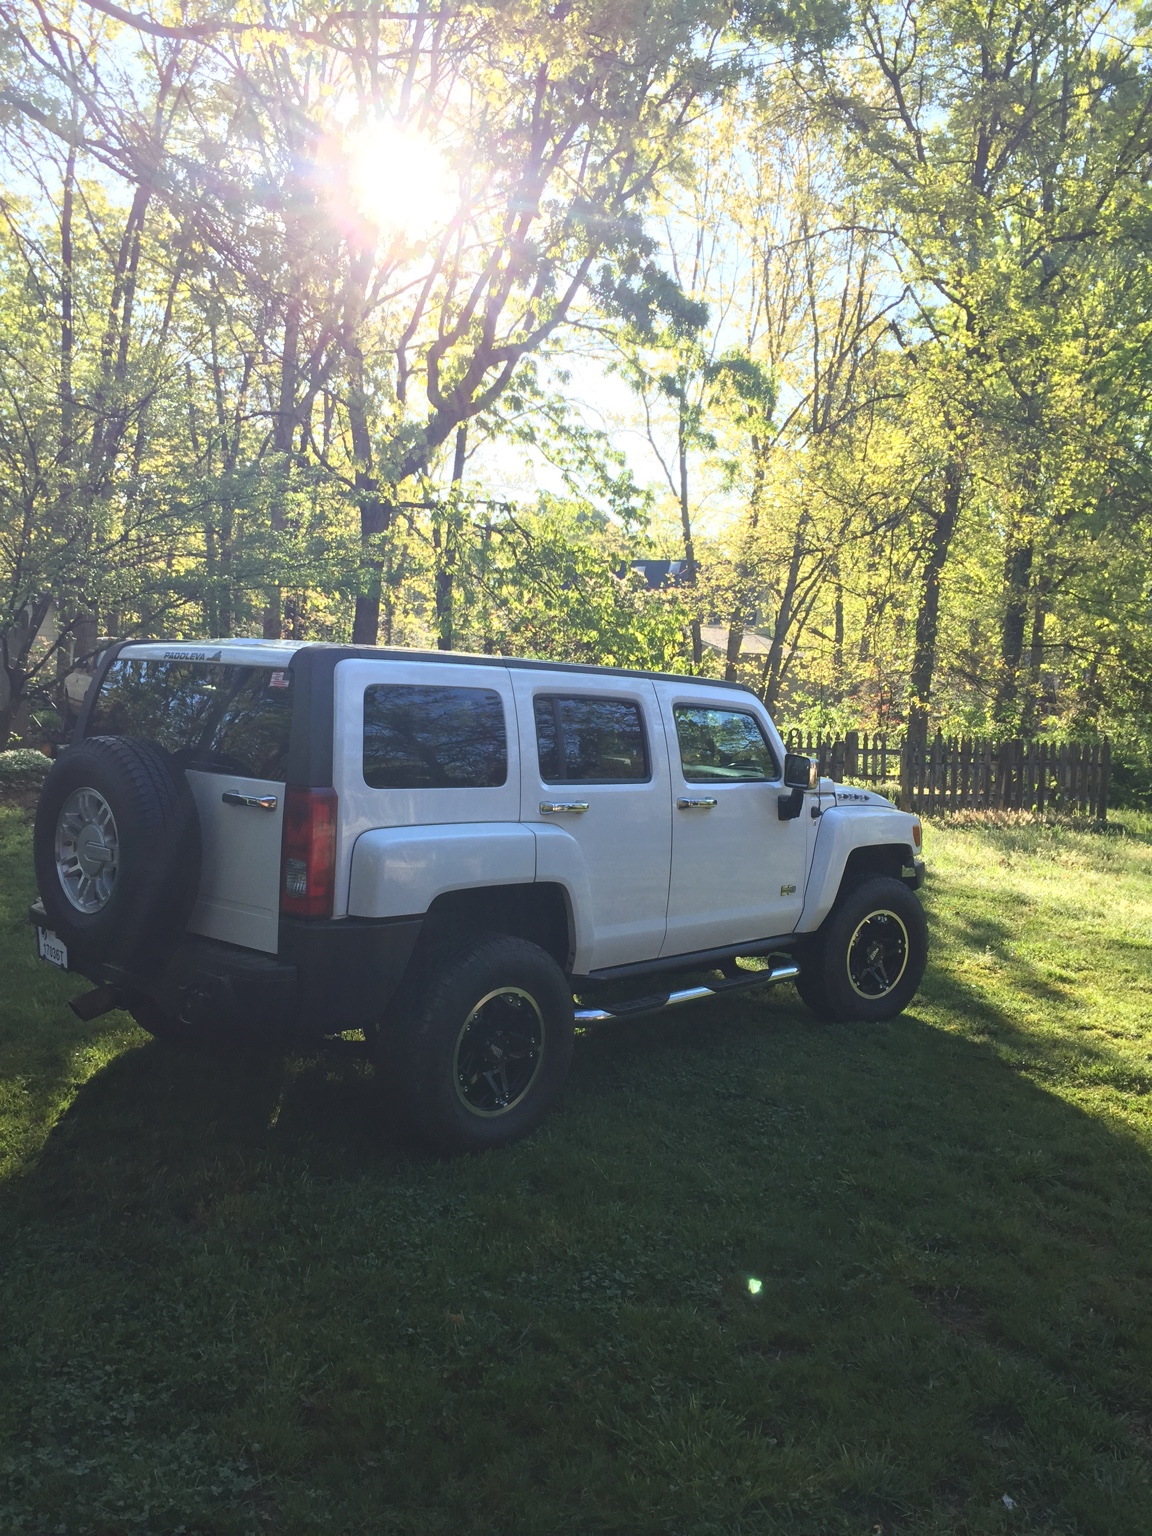 Colorado chevy colorado 33s : Post Pics of your H3 with 33's!! - Page 2